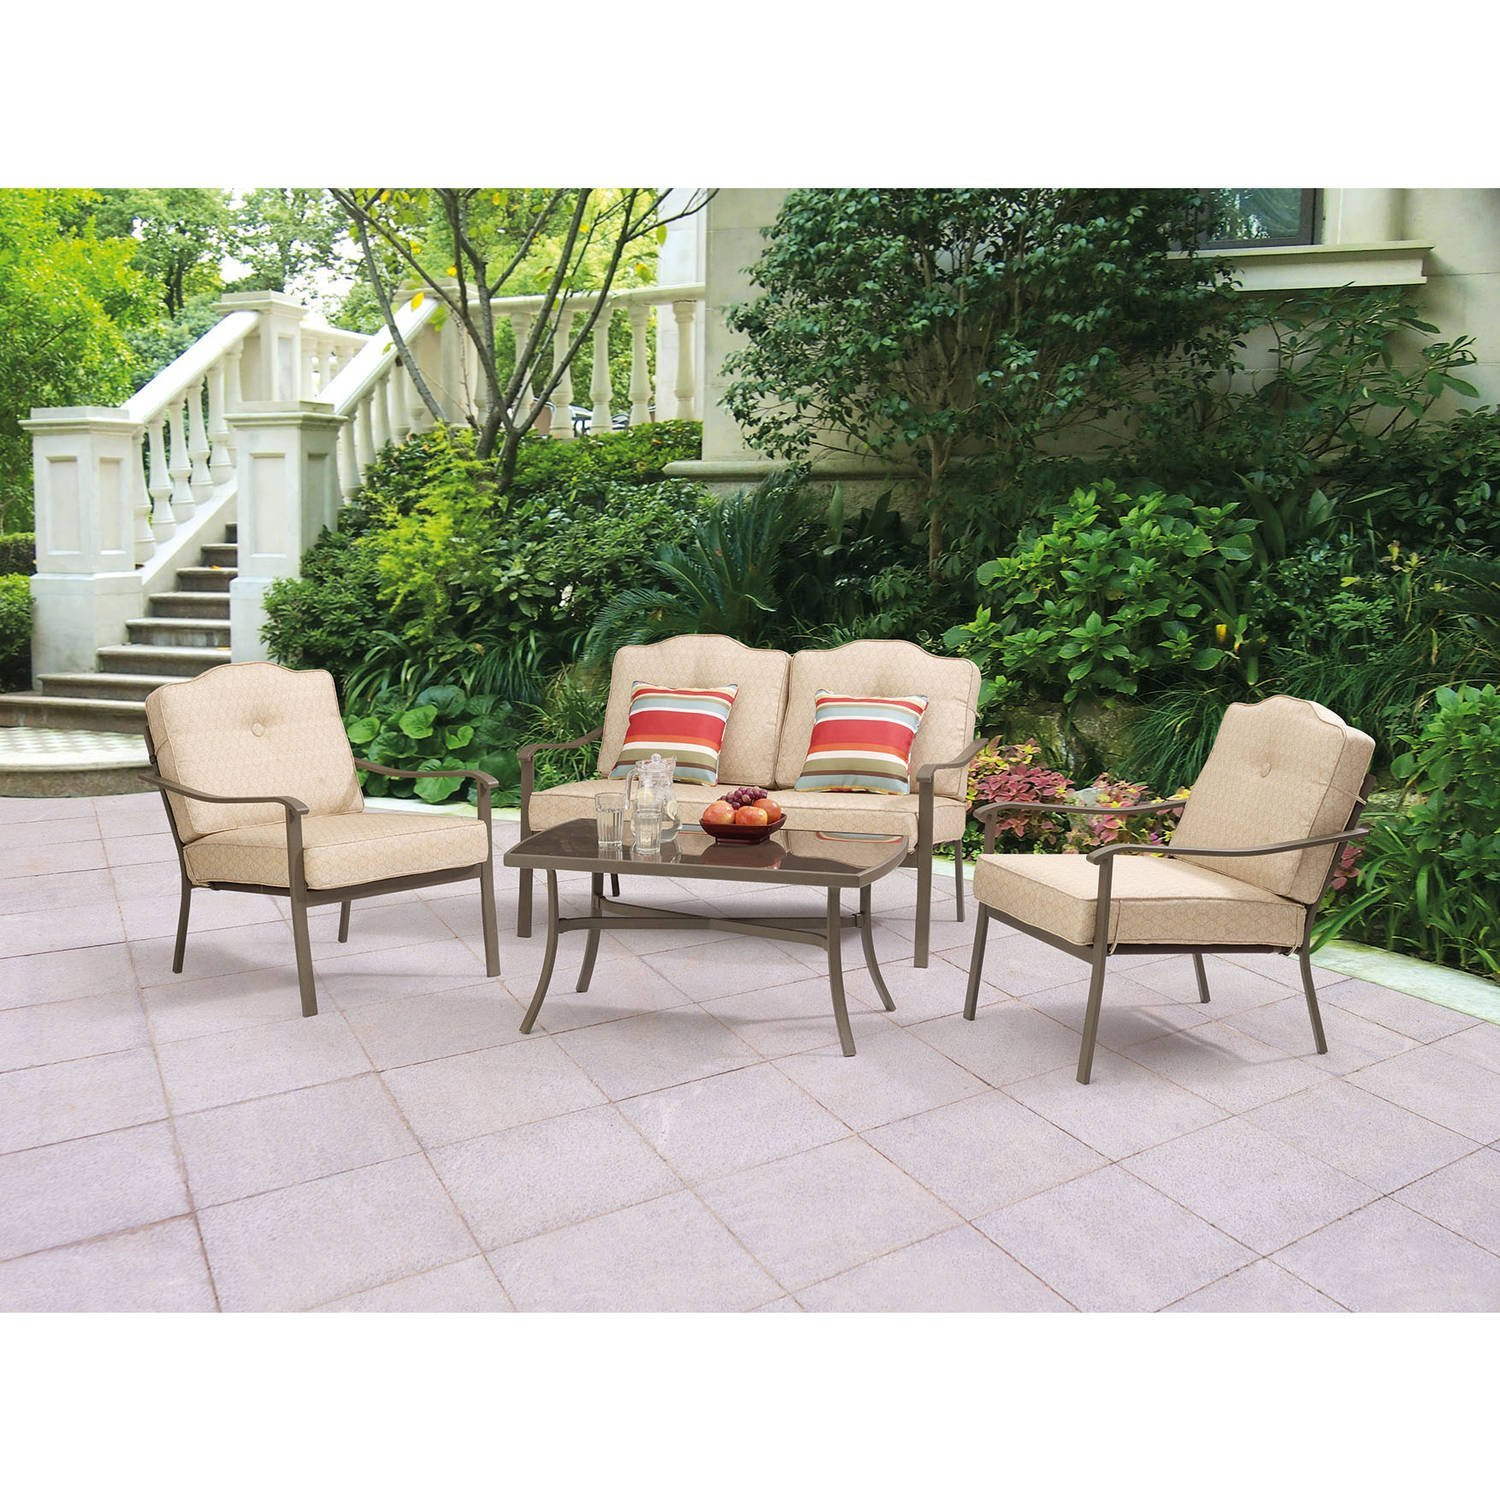 New Quality Mainstays Woodland Hills 4-Piece Chat Set Outdoor Patio Furniture Wholesale Price